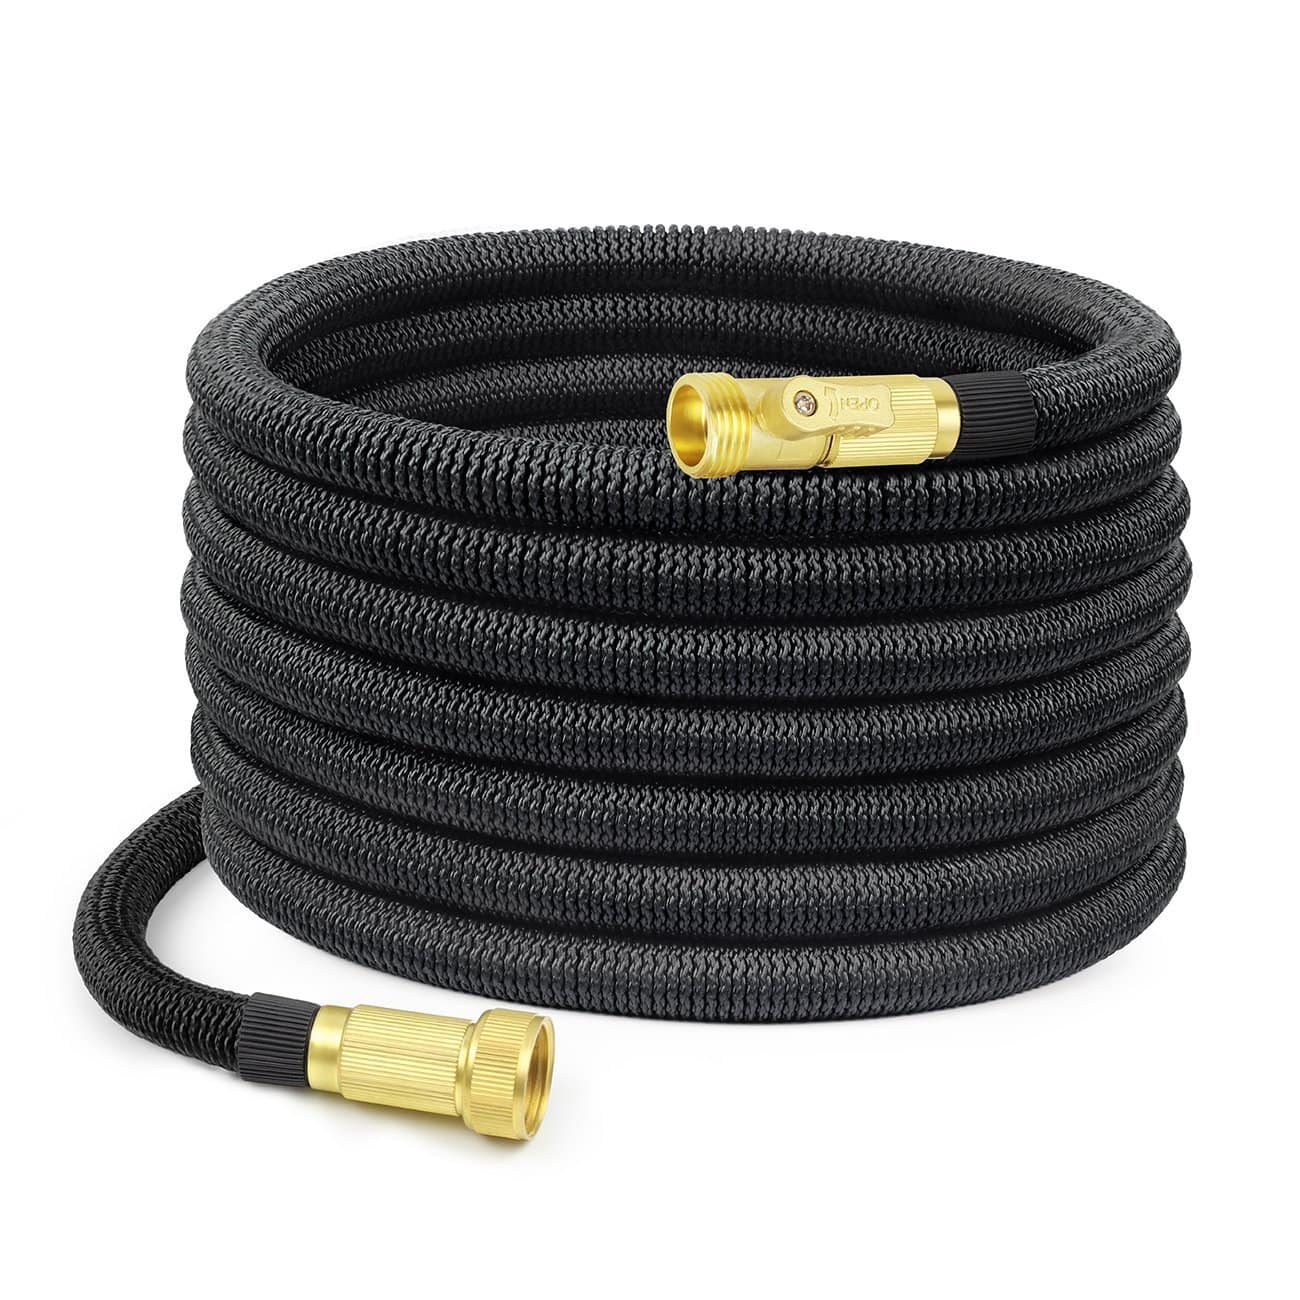 50ft Shine Hai Garden Hose with Brass Connectors $14